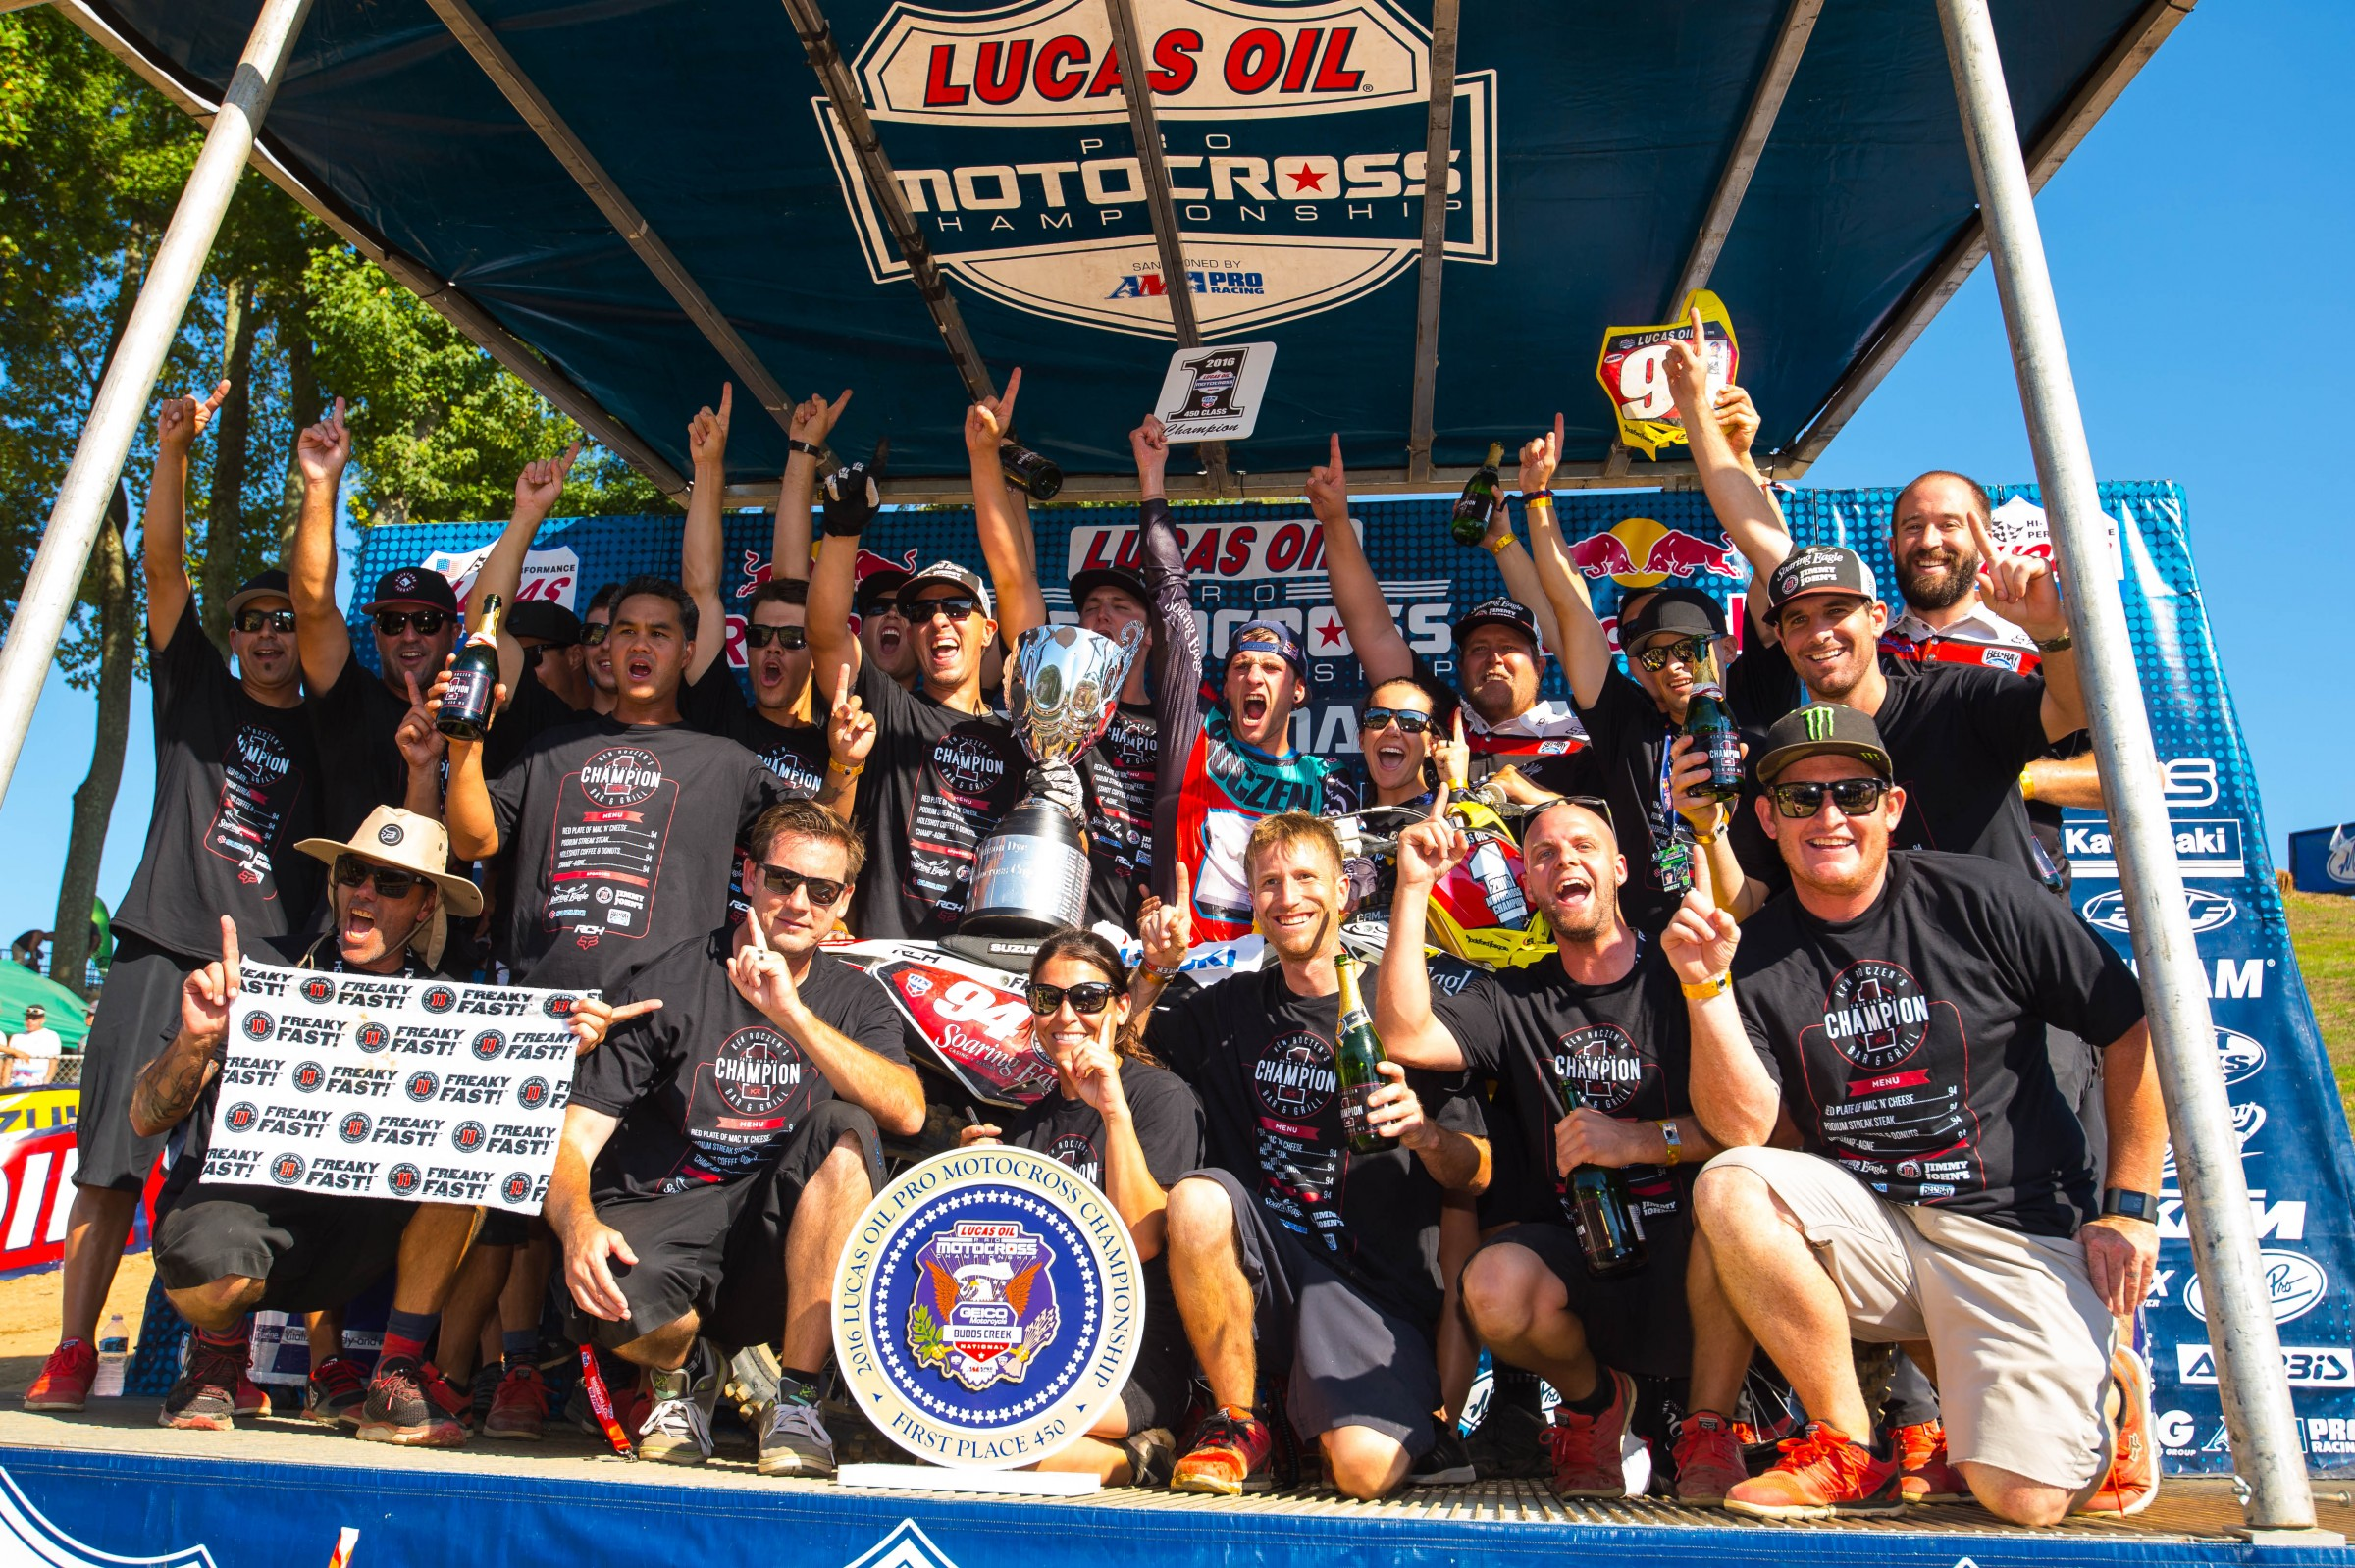 RCH was the first privately funded team to win a Lucas Oil Pro Motocross 450 Class Championship.